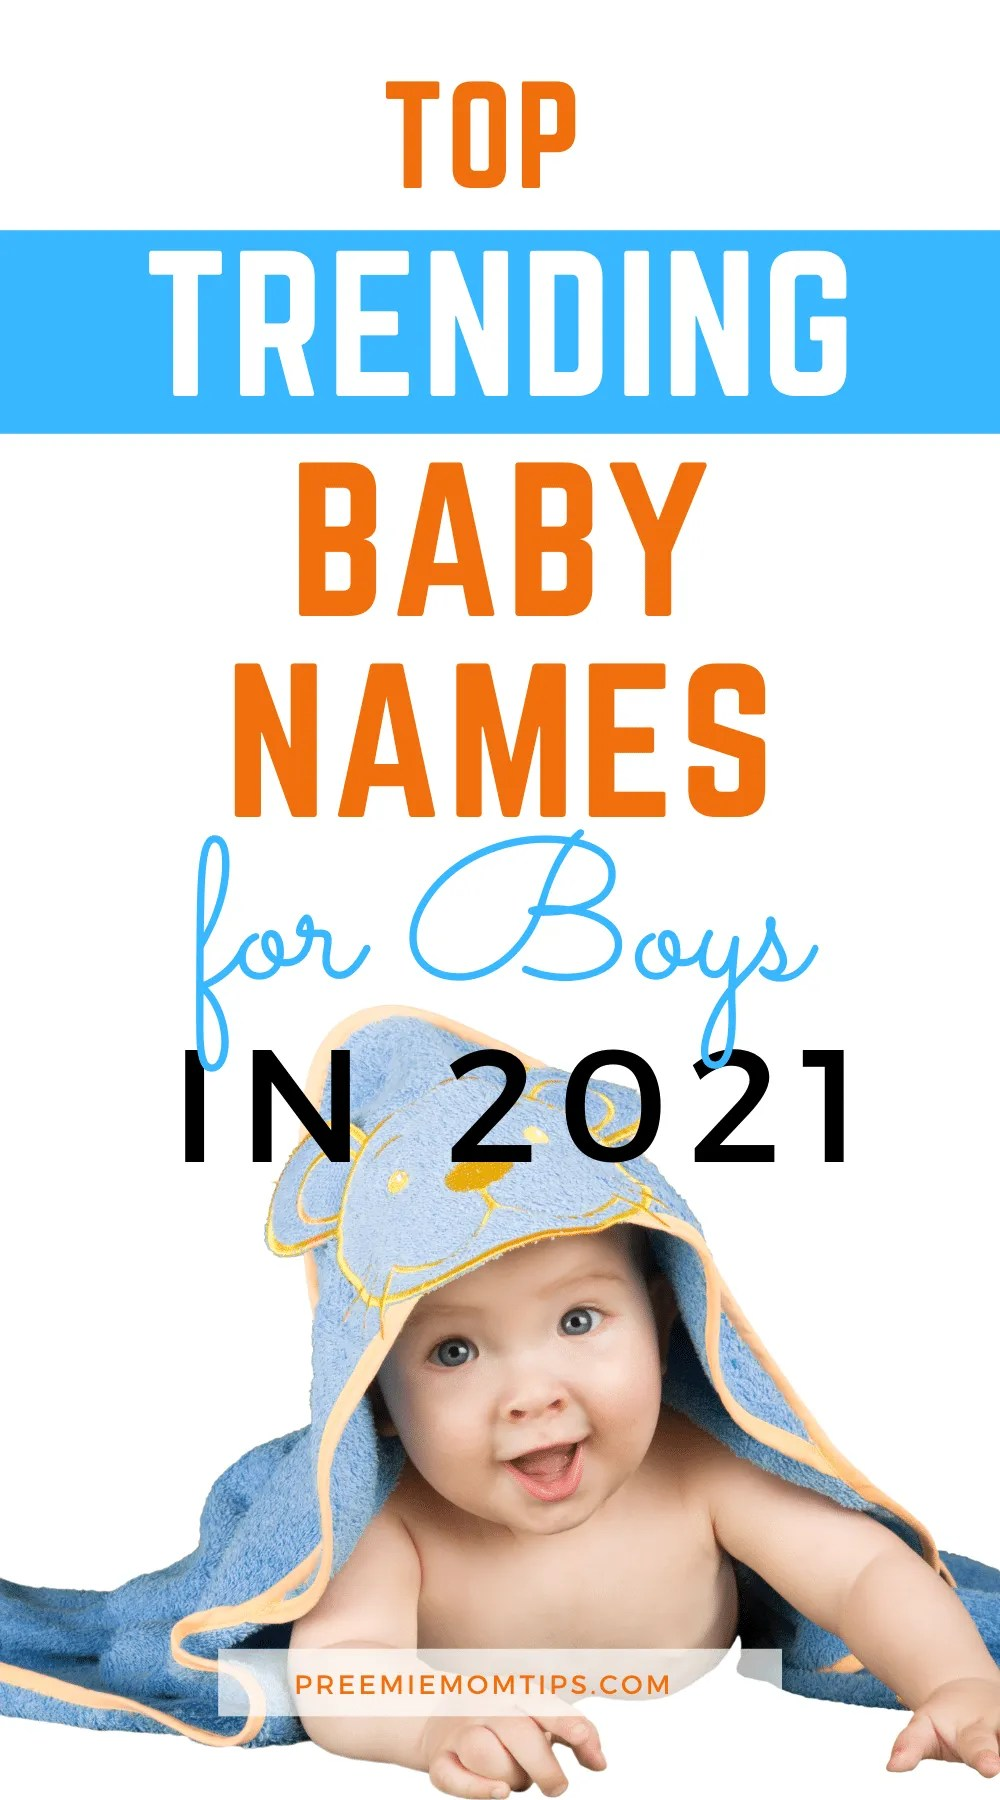 These are the top trending baby names for boys, to give new moms inspiration to find the perfect name for their baby boys!